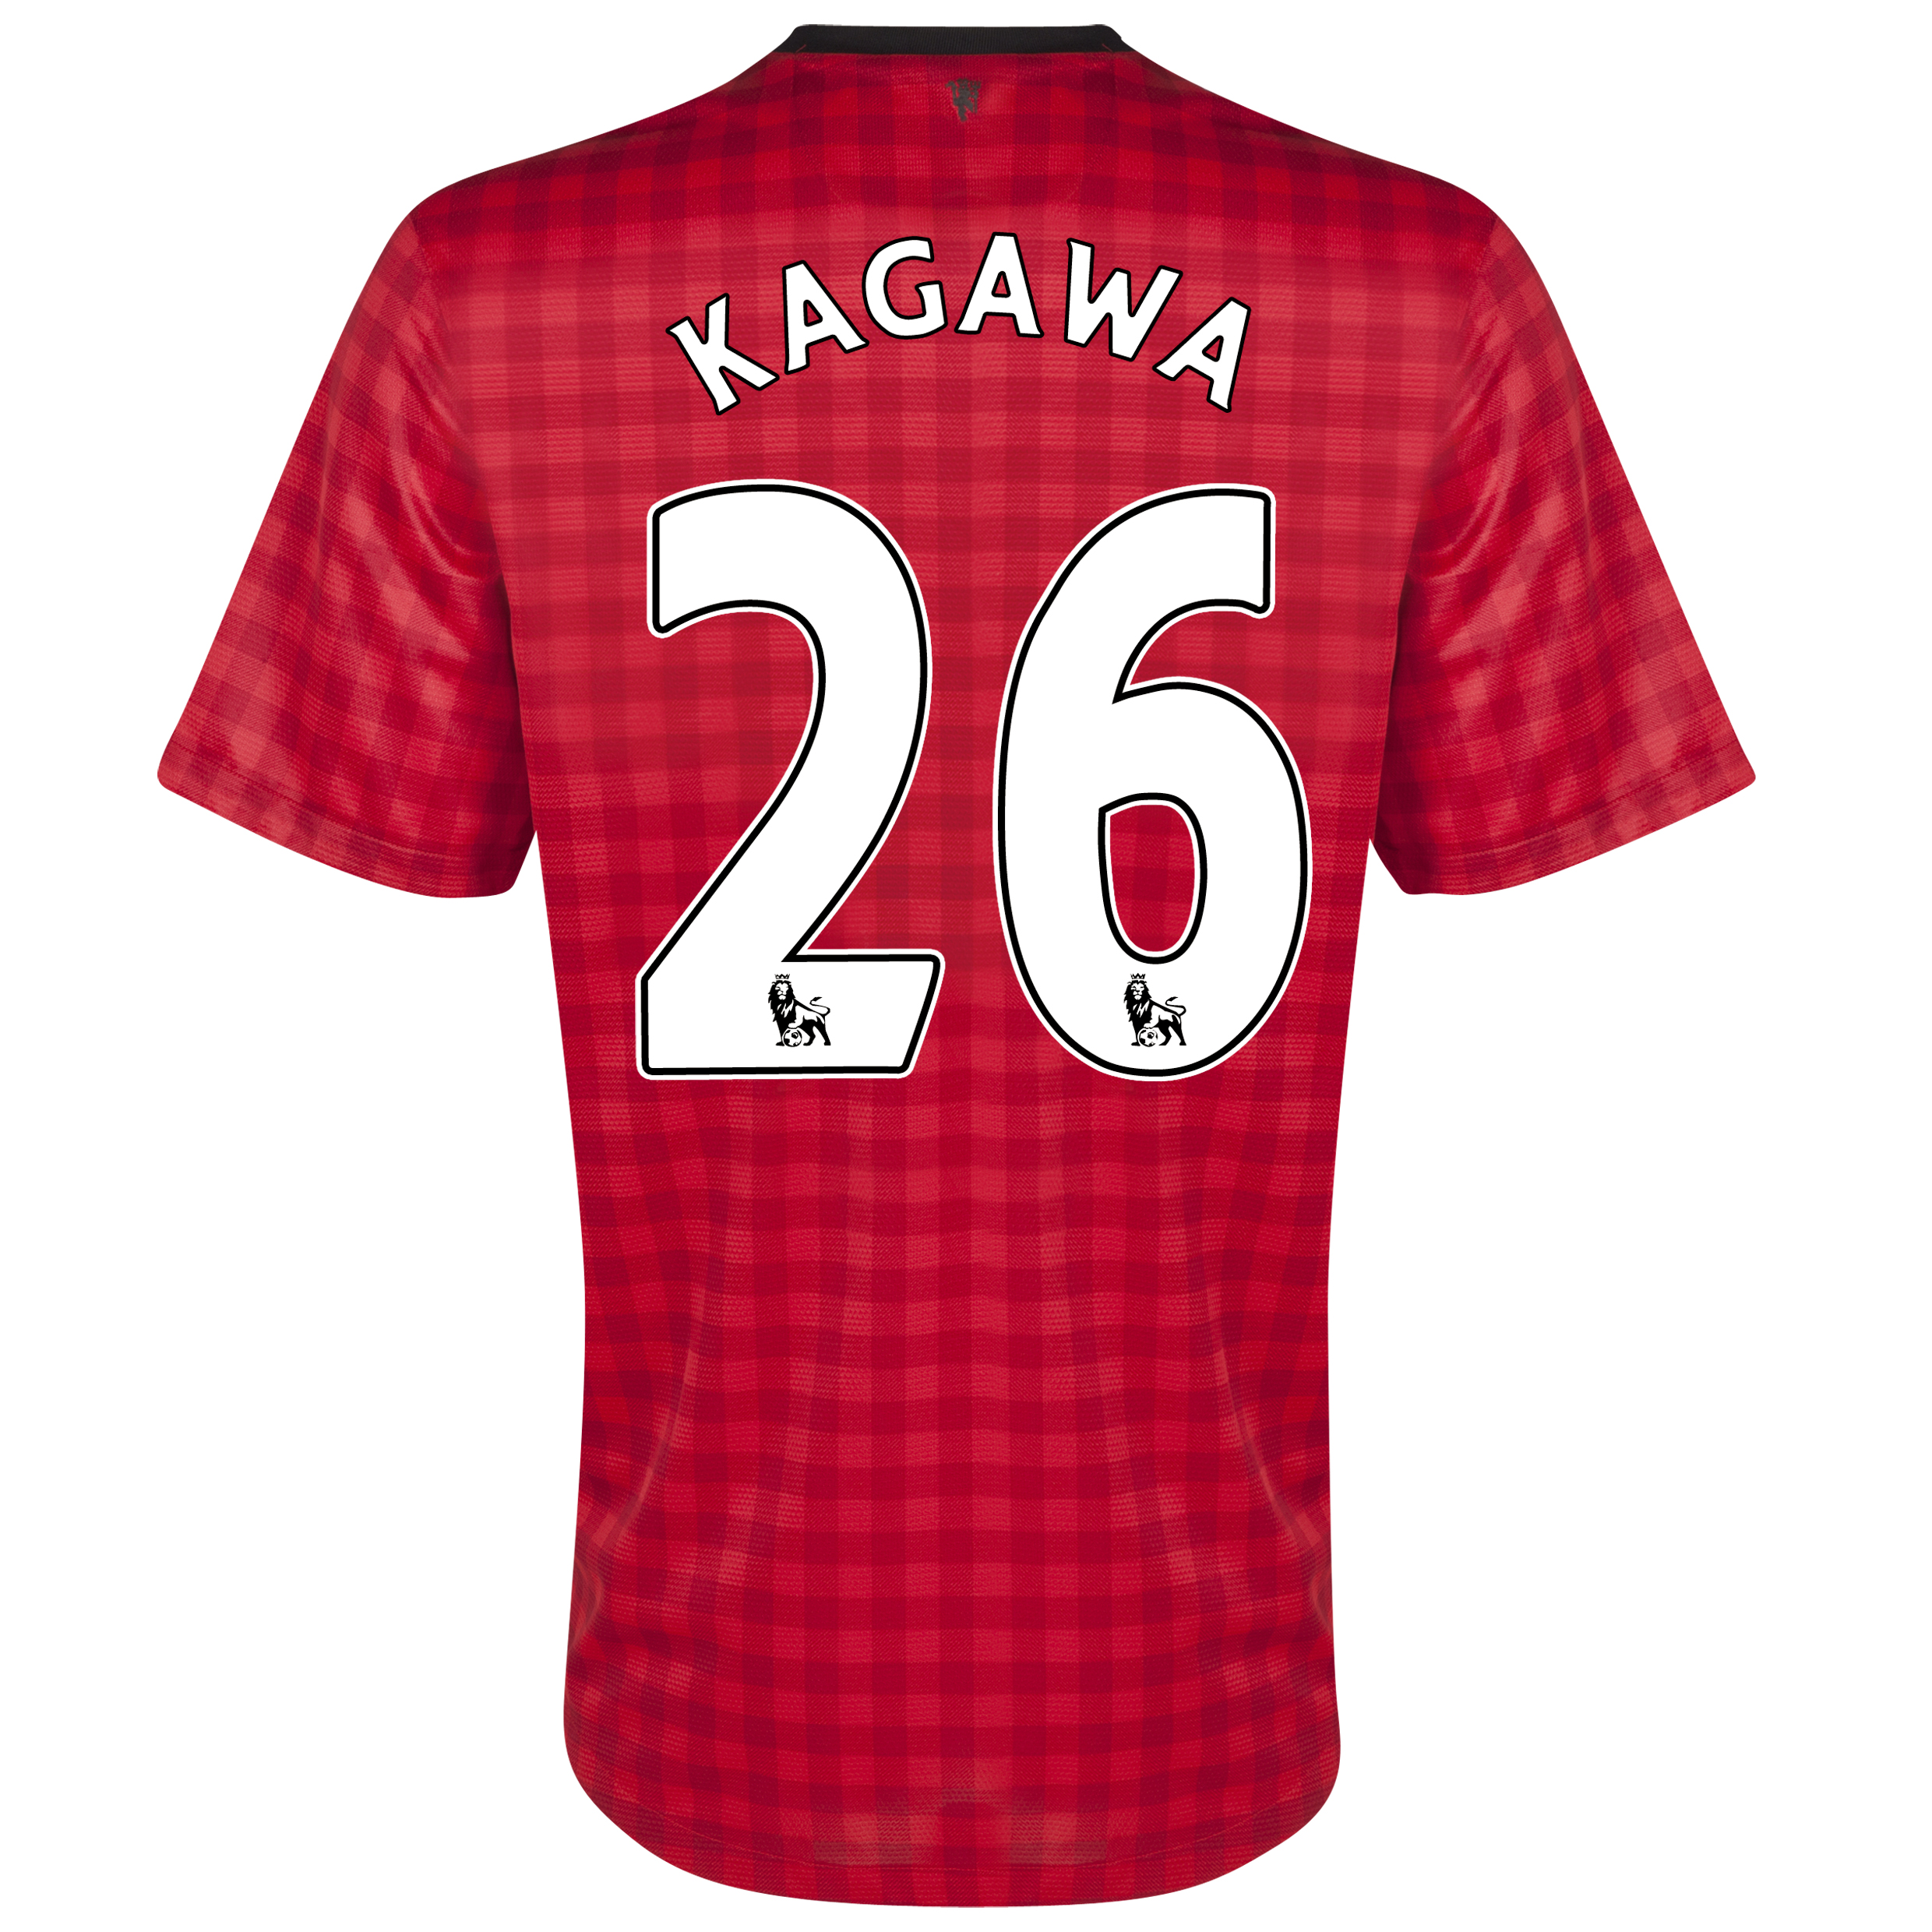 Manchester United Home Shirt 2012/13 - Kids with Kagawa 26 printing